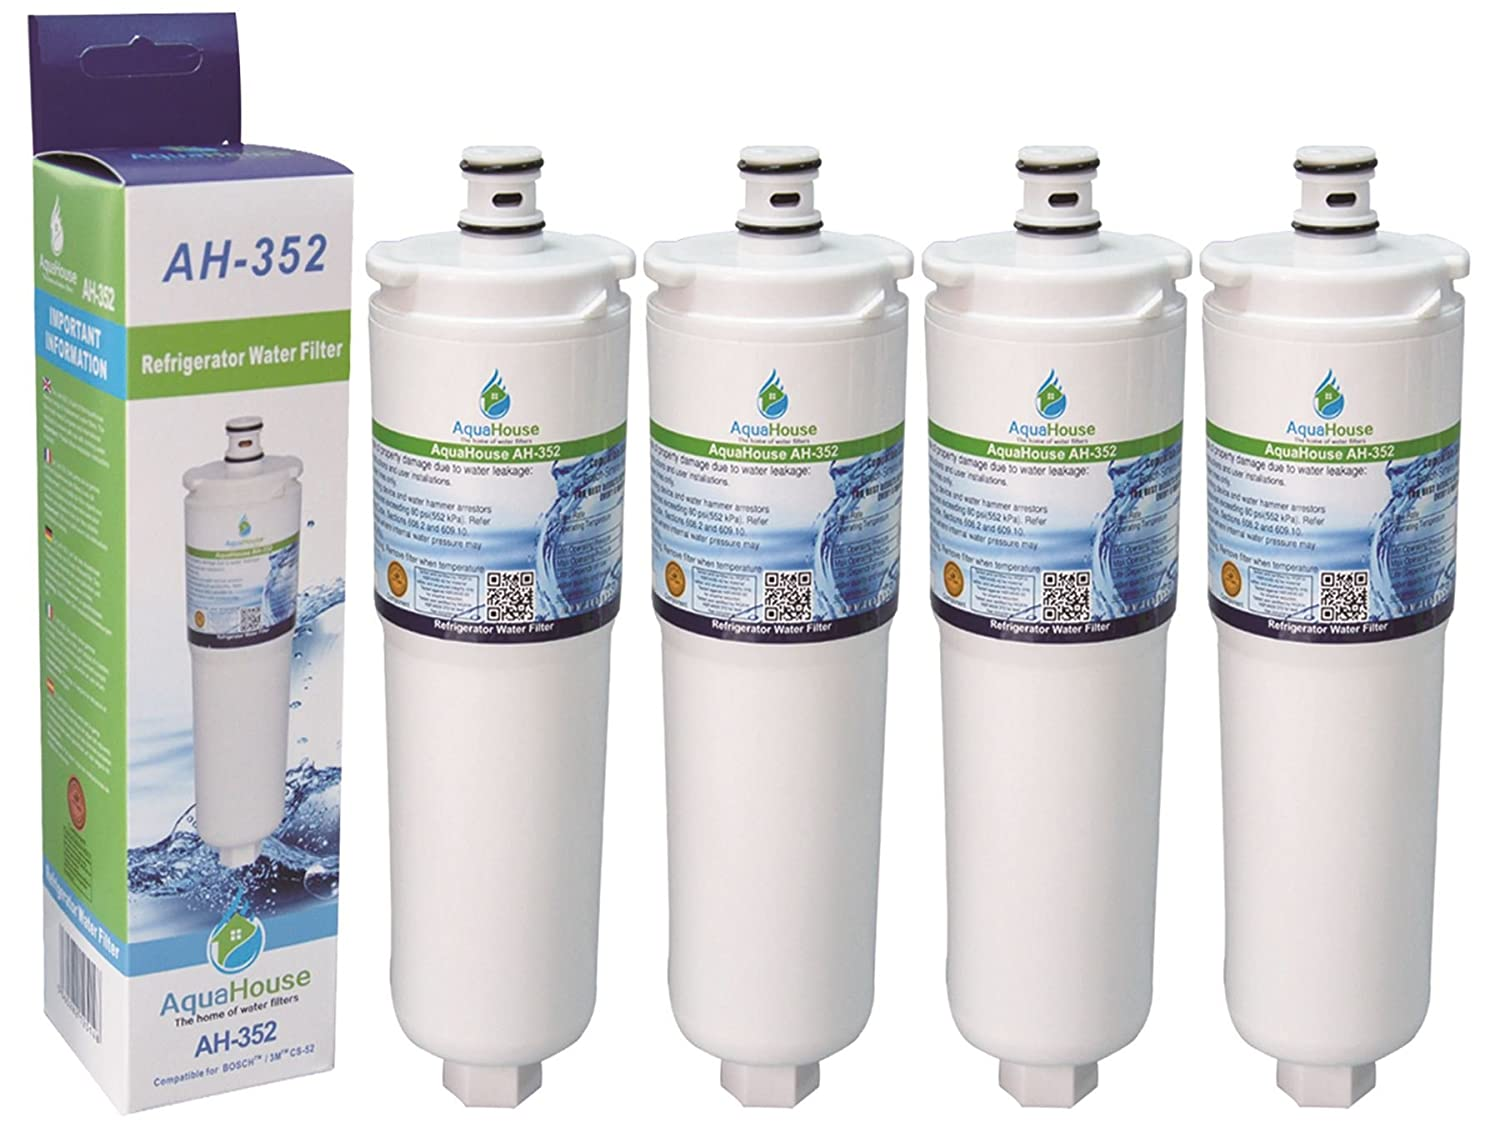 4x ah-352 si adatta Abode Safelock aquafier ACQUA FILTRO CARTUCCIA CS-52 AT2002 RUBINETTO